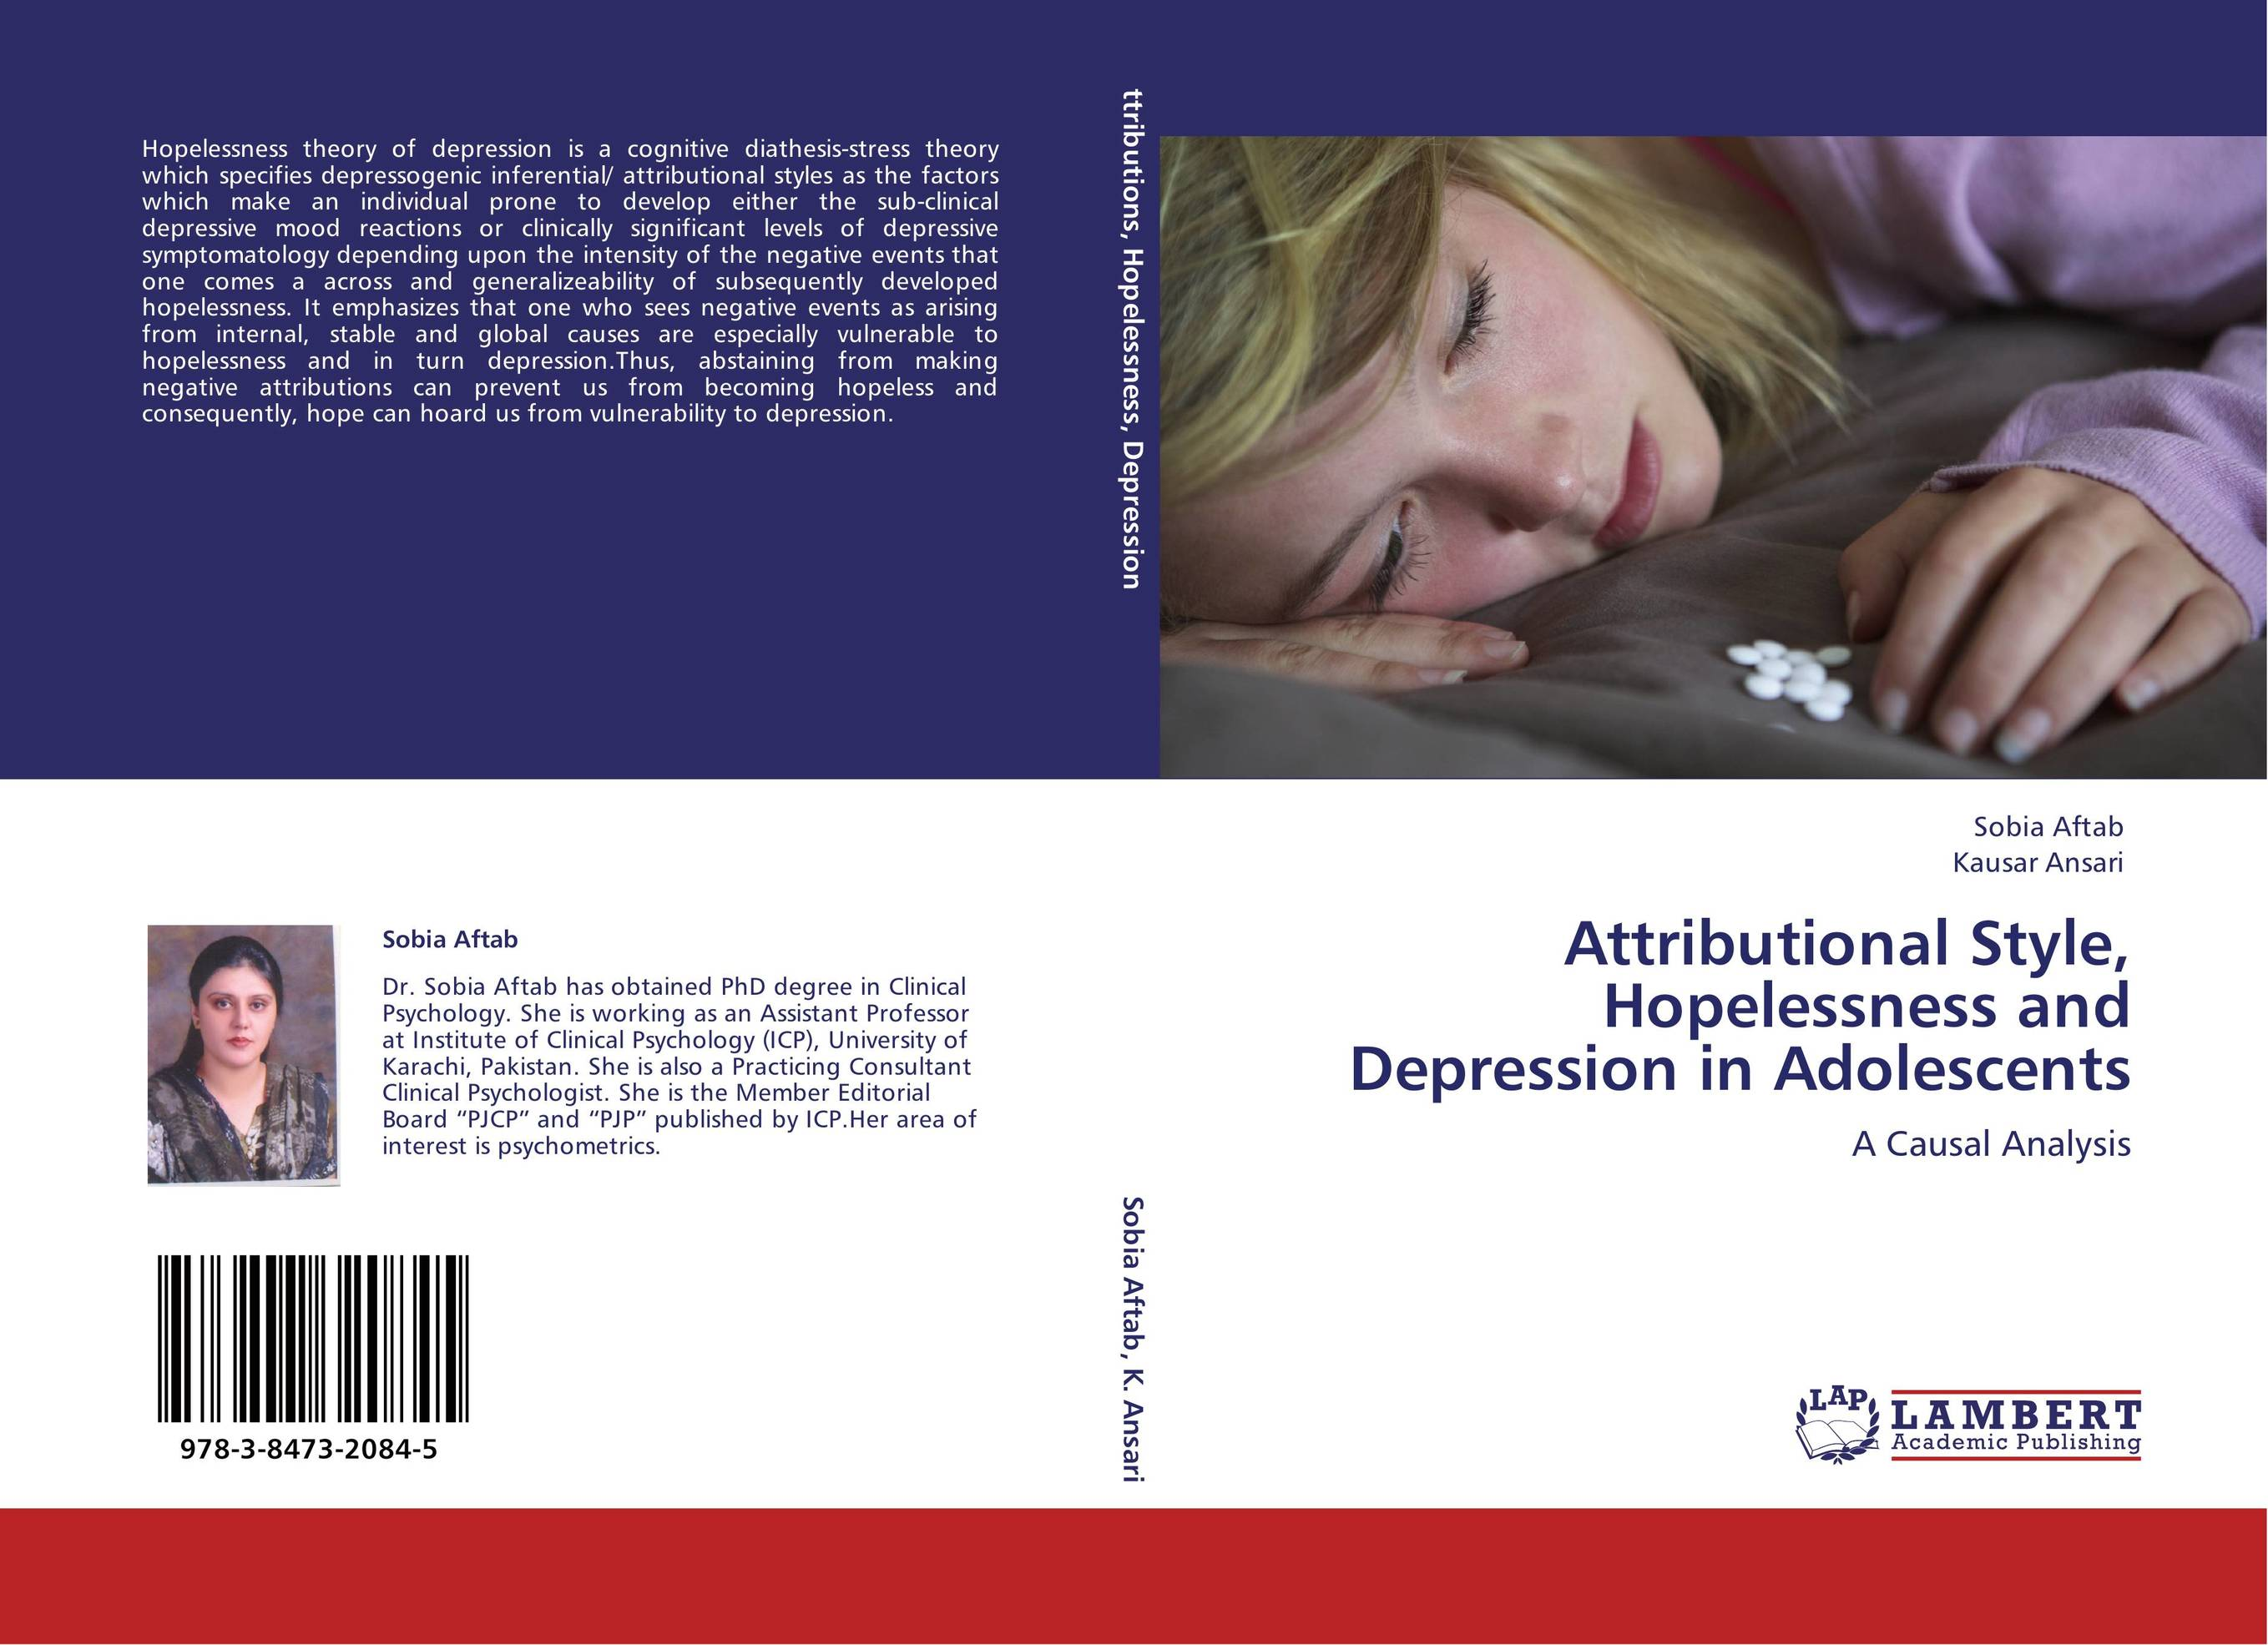 the causes of adolescent depression Depression is usually treated with psychotherapy, medication, or a combination of the two what is psychotherapy psychotherapy (sometimes called talk therapy) is a term for treatment techniques that can help you identify and manage troubling emotions, thoughts, and behavior.